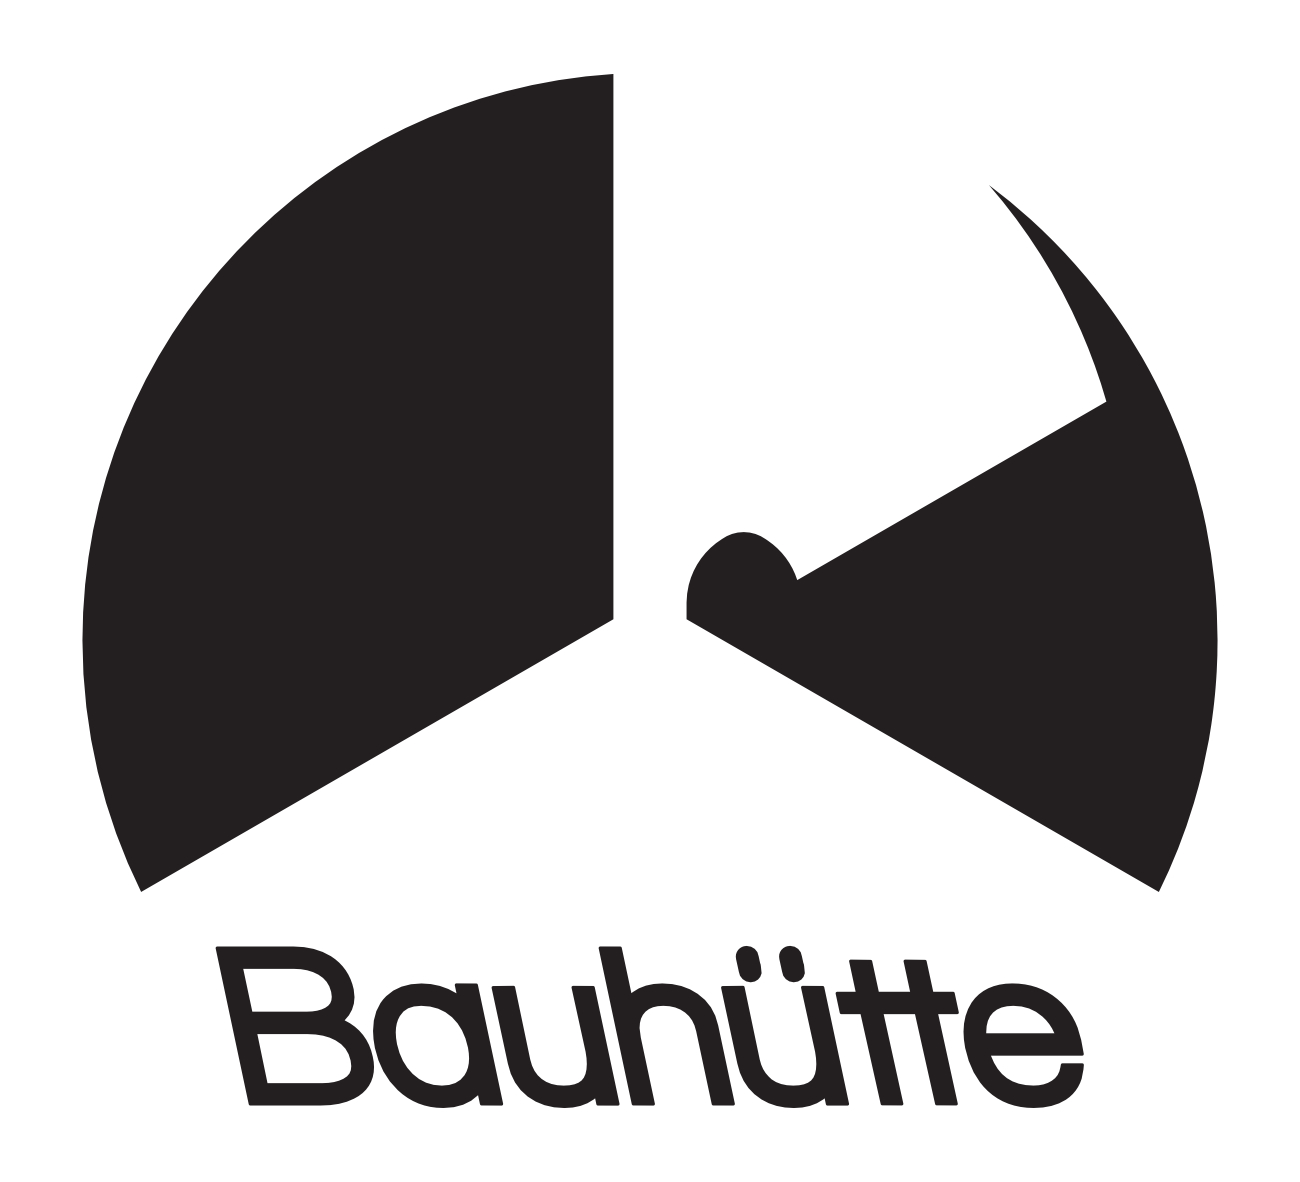 Bauhutte (BE-S CO., LTD.)